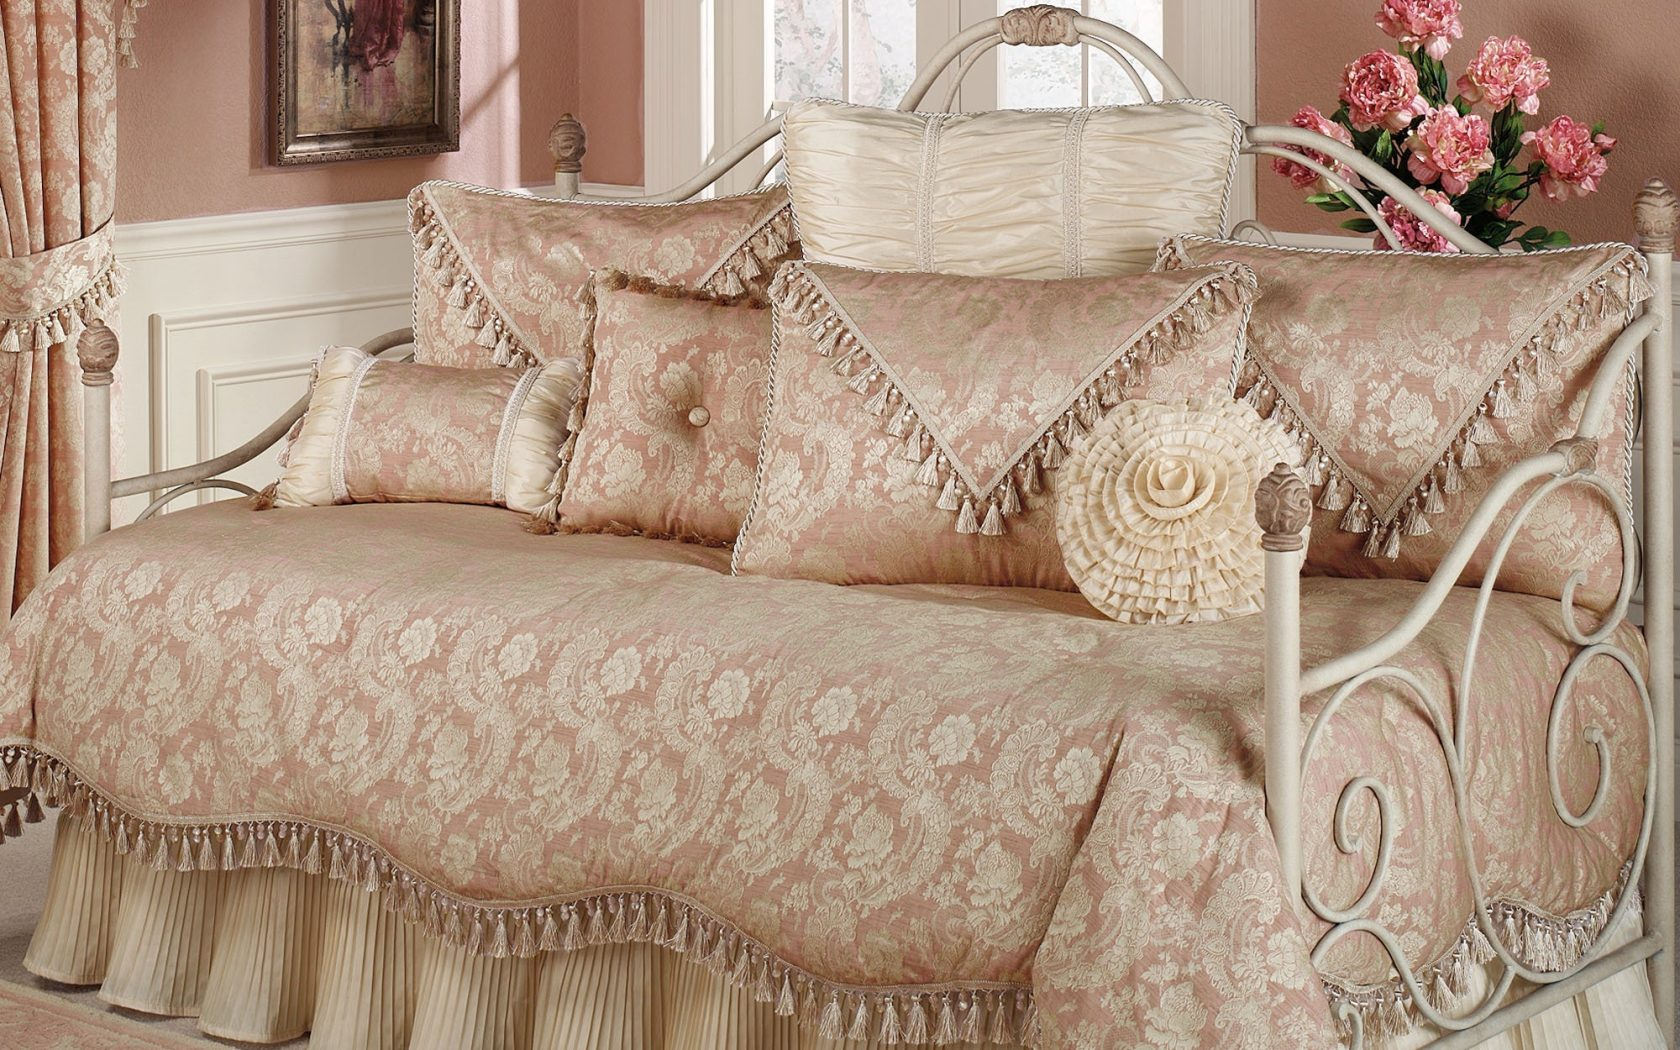 daybed bedding sets clearance photo - 1